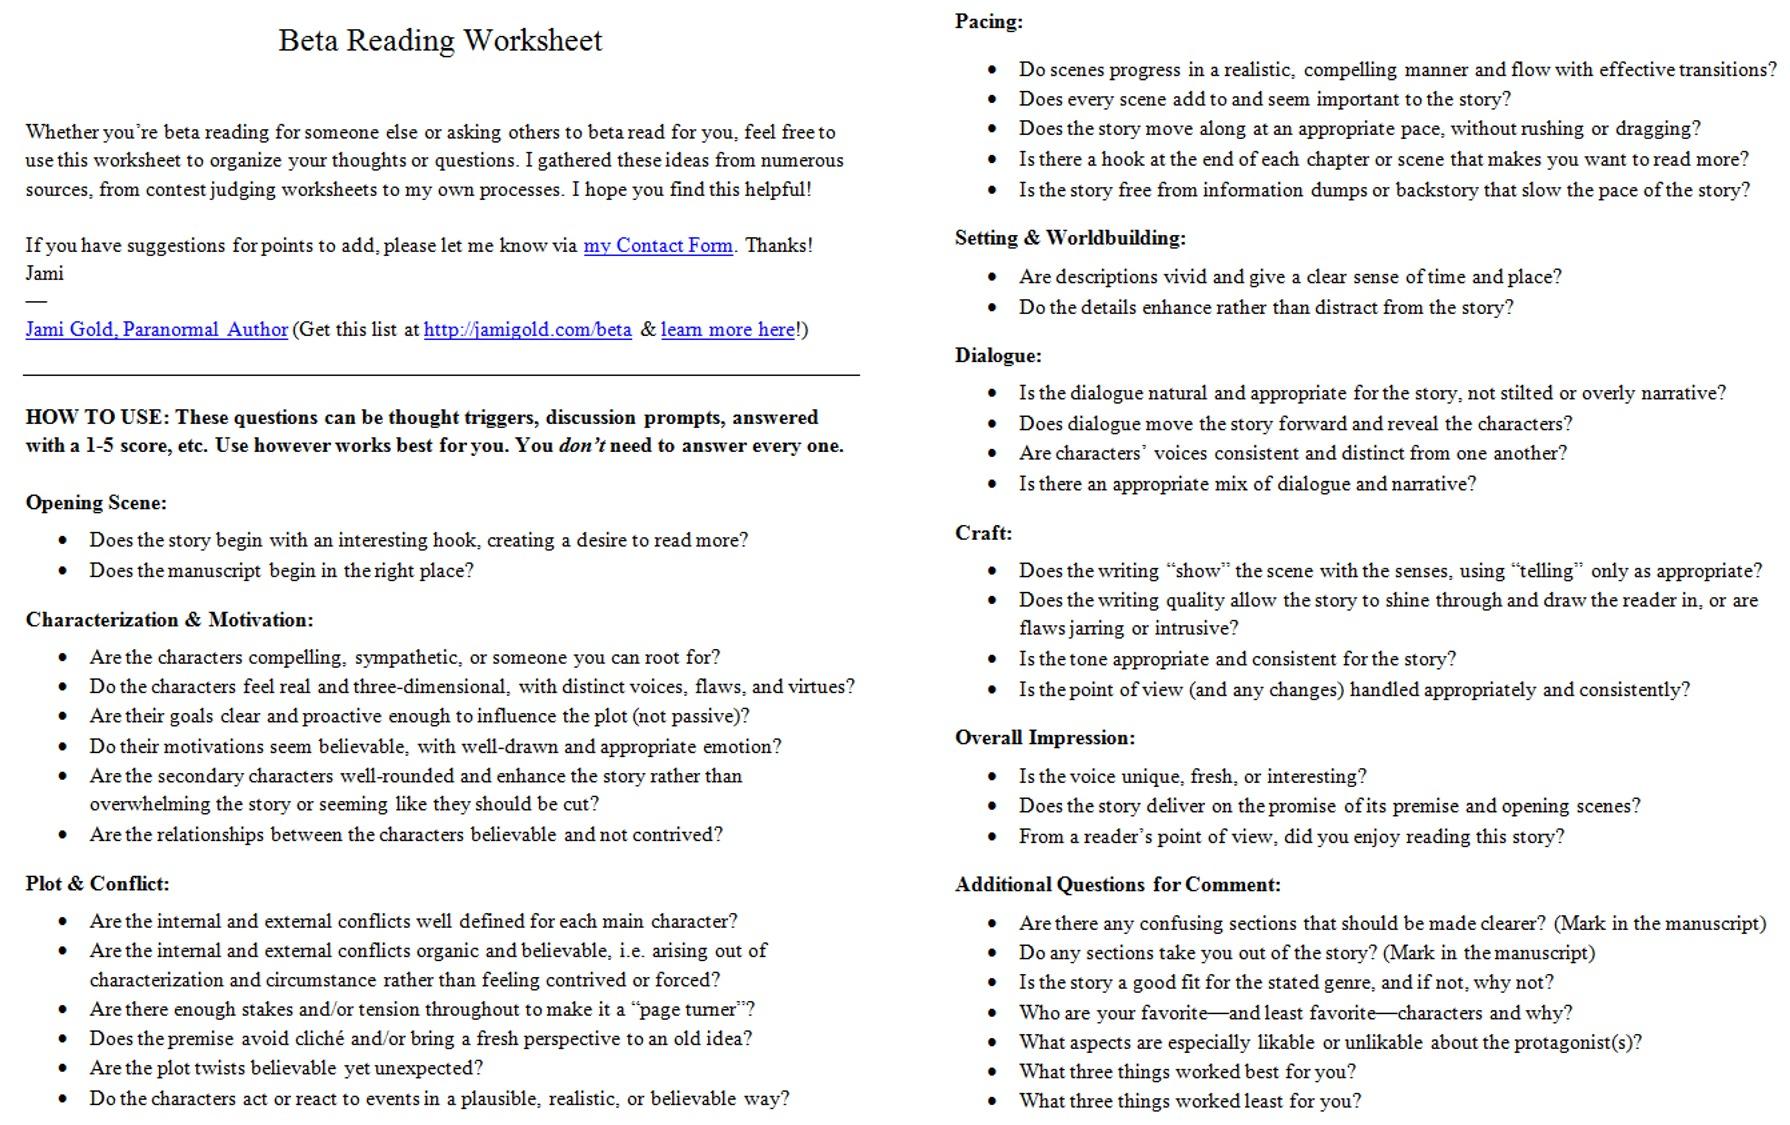 Introducing the Beta Reading Worksheet – Thought Stopping Worksheet